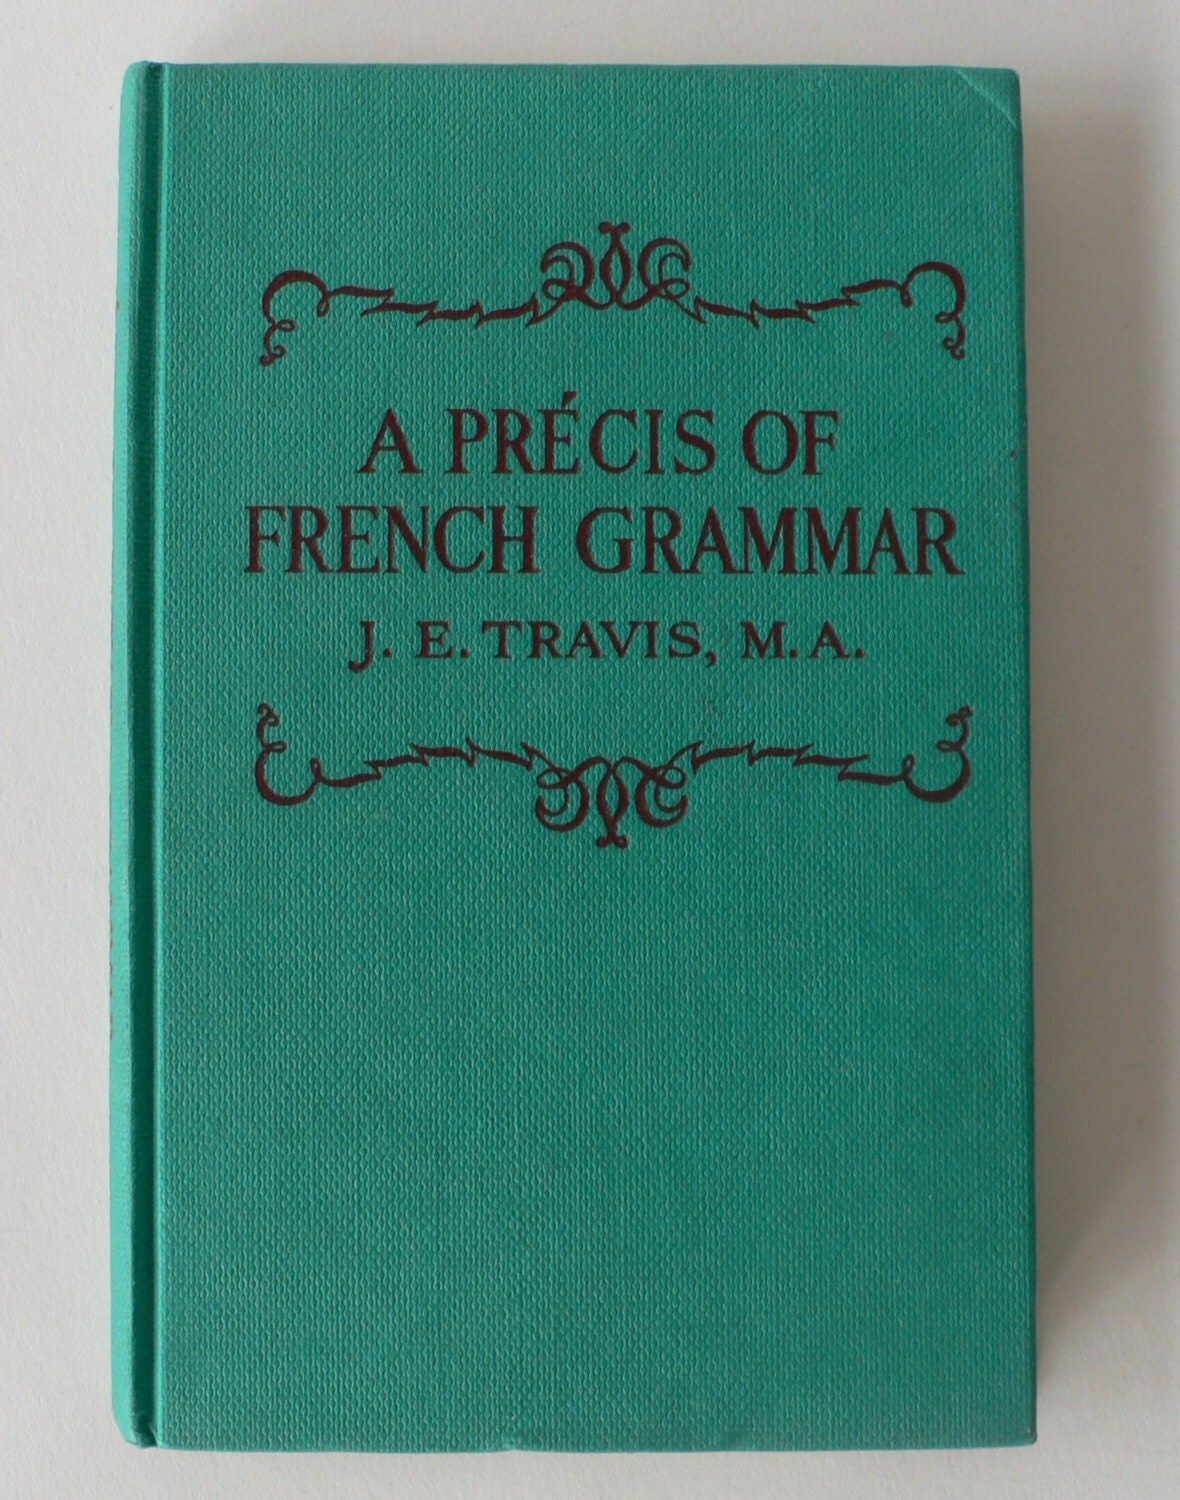 vintage book a precis of french grammar 1969 from diz has. Black Bedroom Furniture Sets. Home Design Ideas